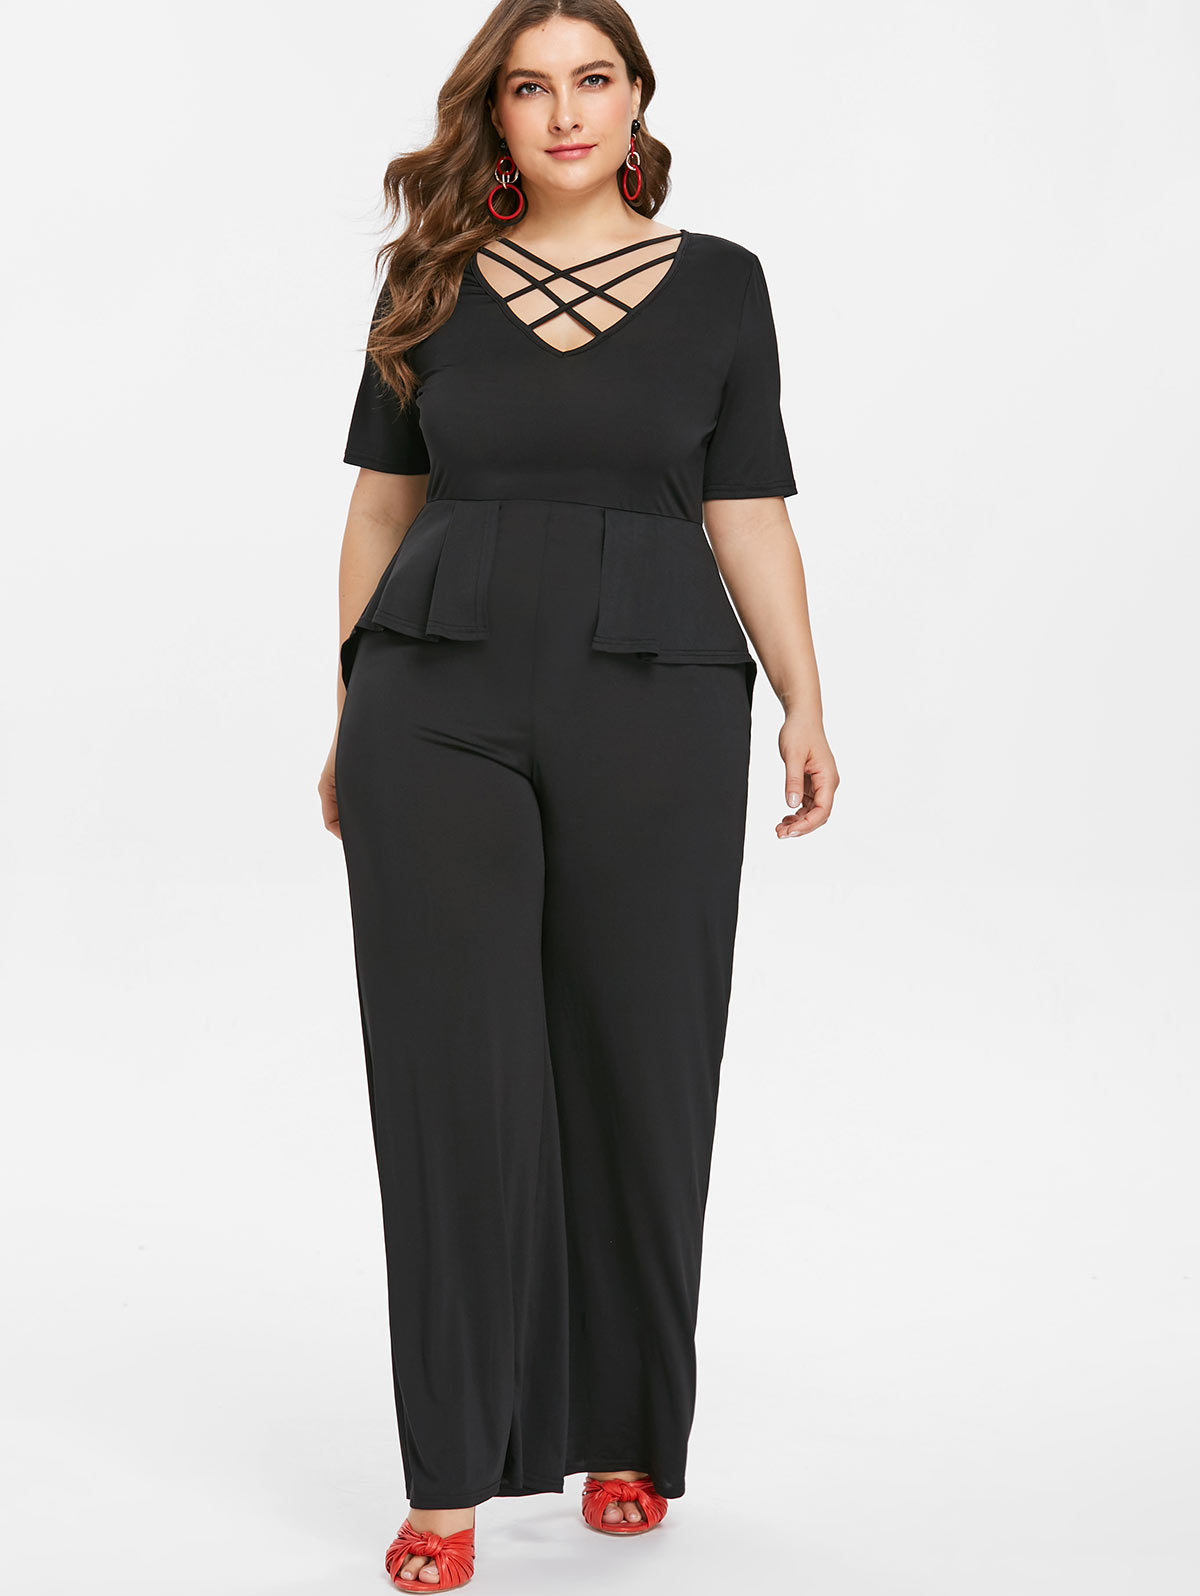 Wipalo Plus Size 5XL V Neck Wide Leg Pants Elegant Jumpsuit Women Black  Short Sleeve Overlay Straight Peplum Jumpsuit Overalls-in Jumpsuits from  Women s ... 77b98e8e165a